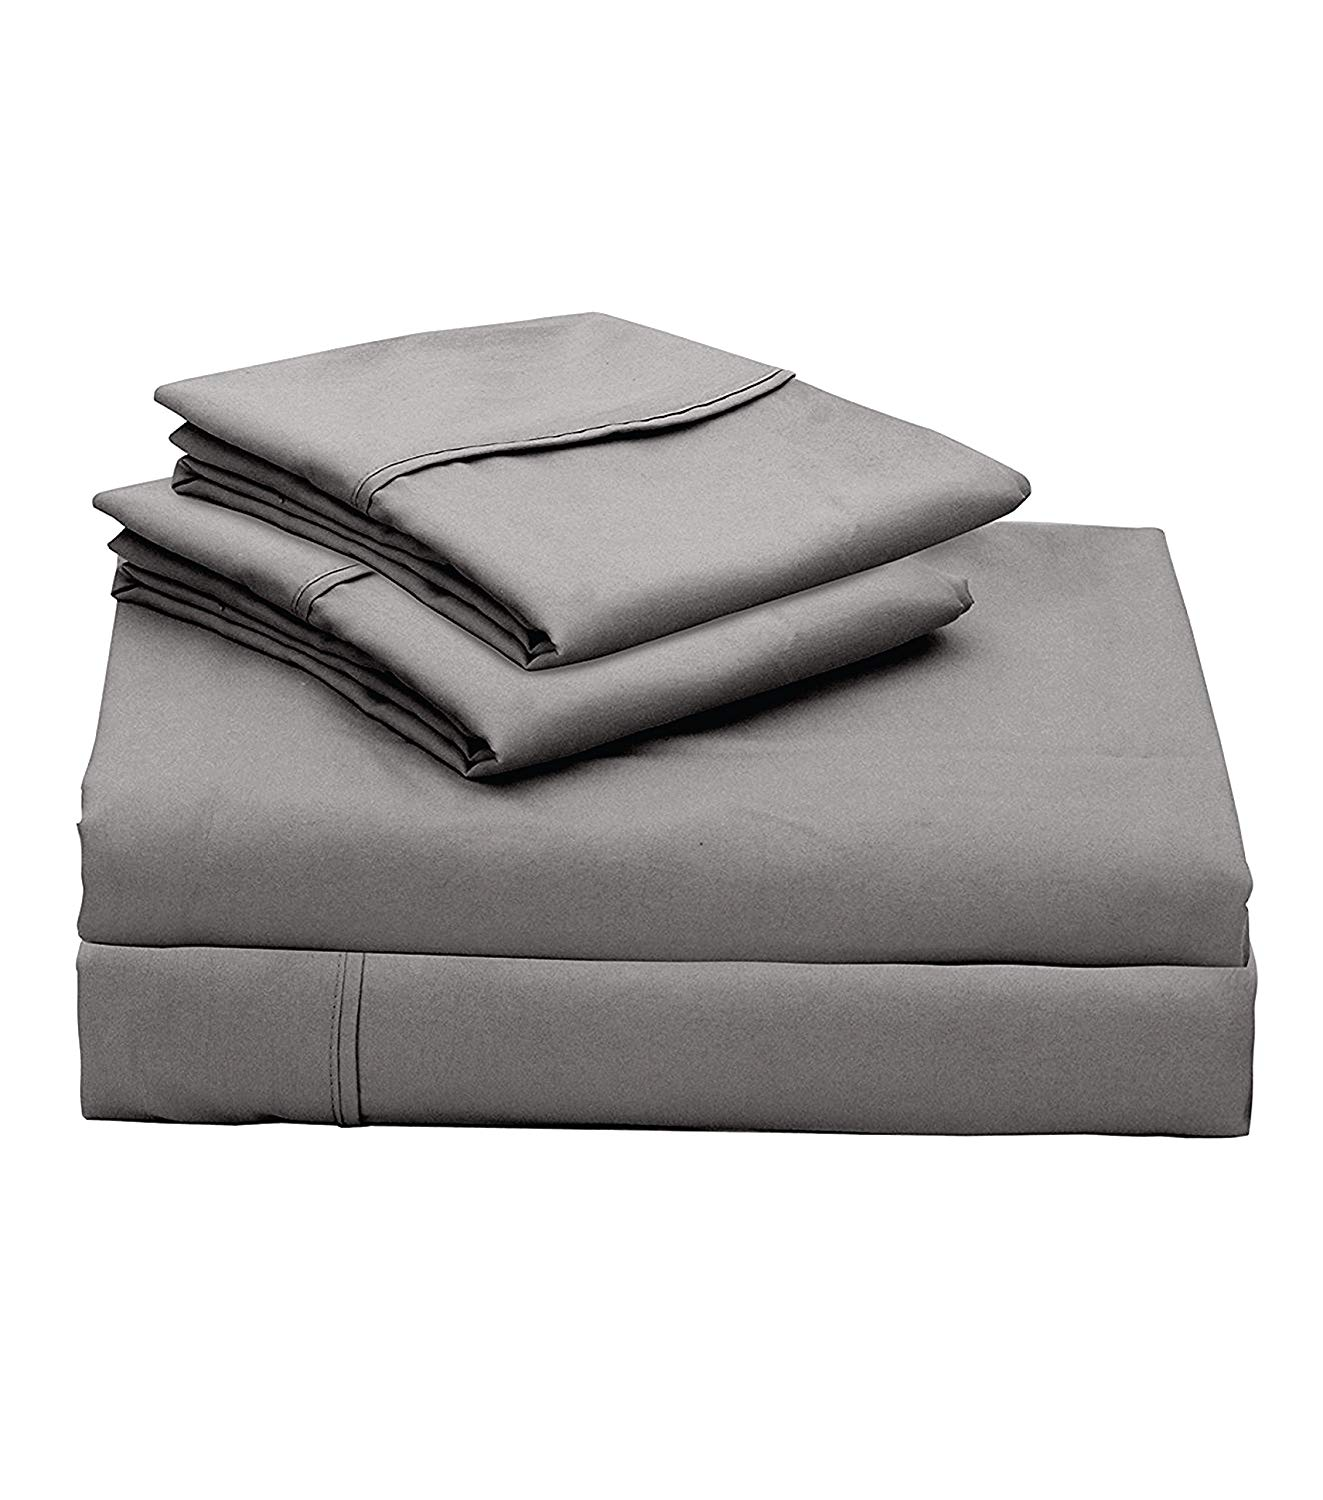 """300-Thread-Count 100% Cotton Sheet Elephant Grey Queen-Sheets Set, 4-Piece Long-Staple Hand Picked Cotton Best Bedding Sheets for Bed, Breathable, Soft & Silky Sateen Weave Fits Upto 18"""" Deep Pocket"""